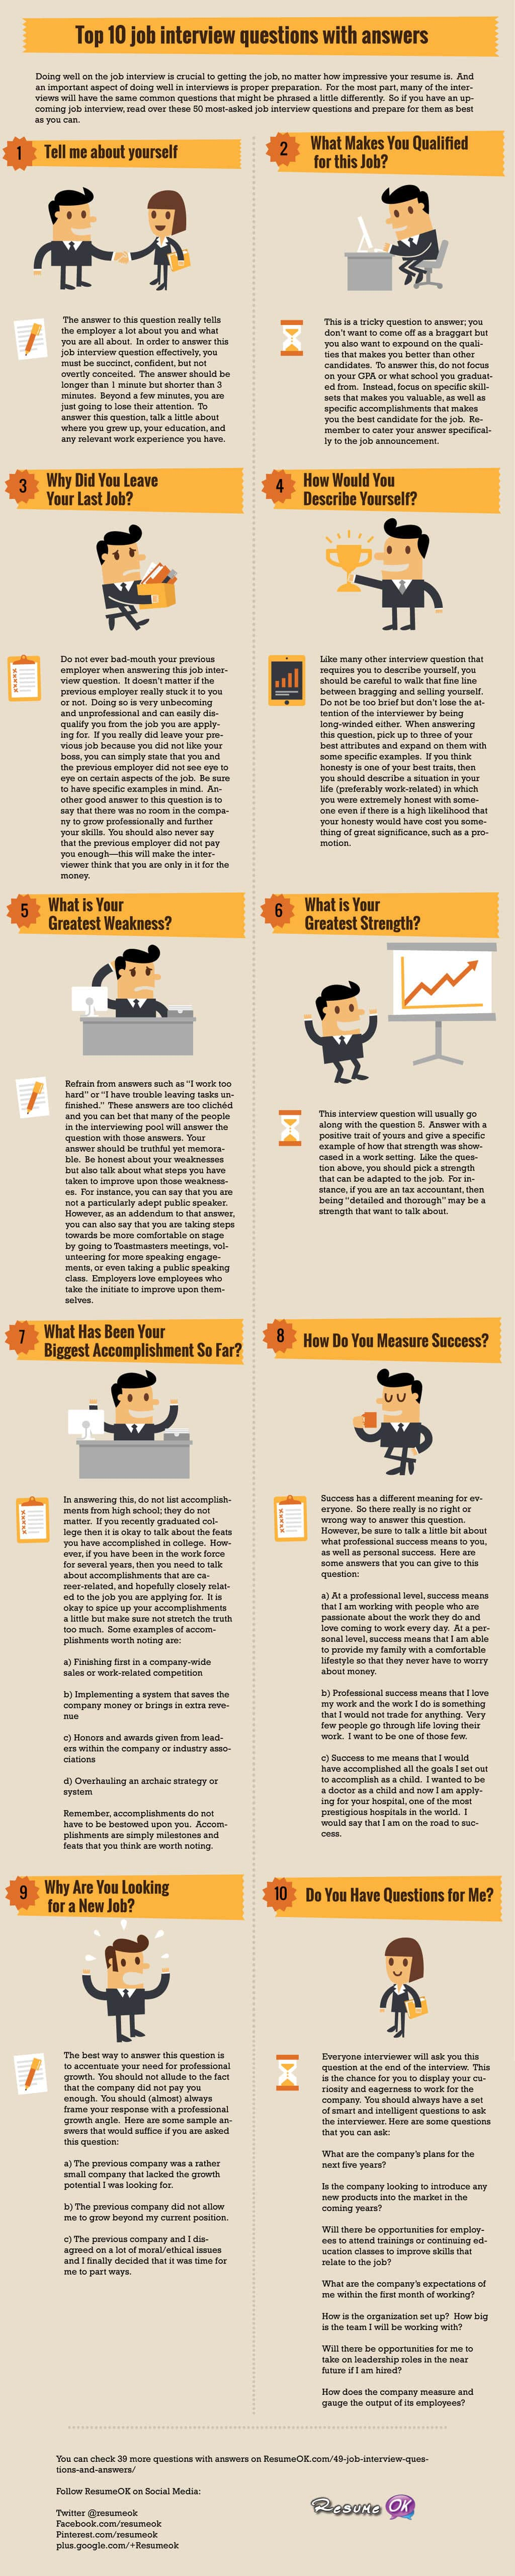 50 Job Interview Questions And Answers